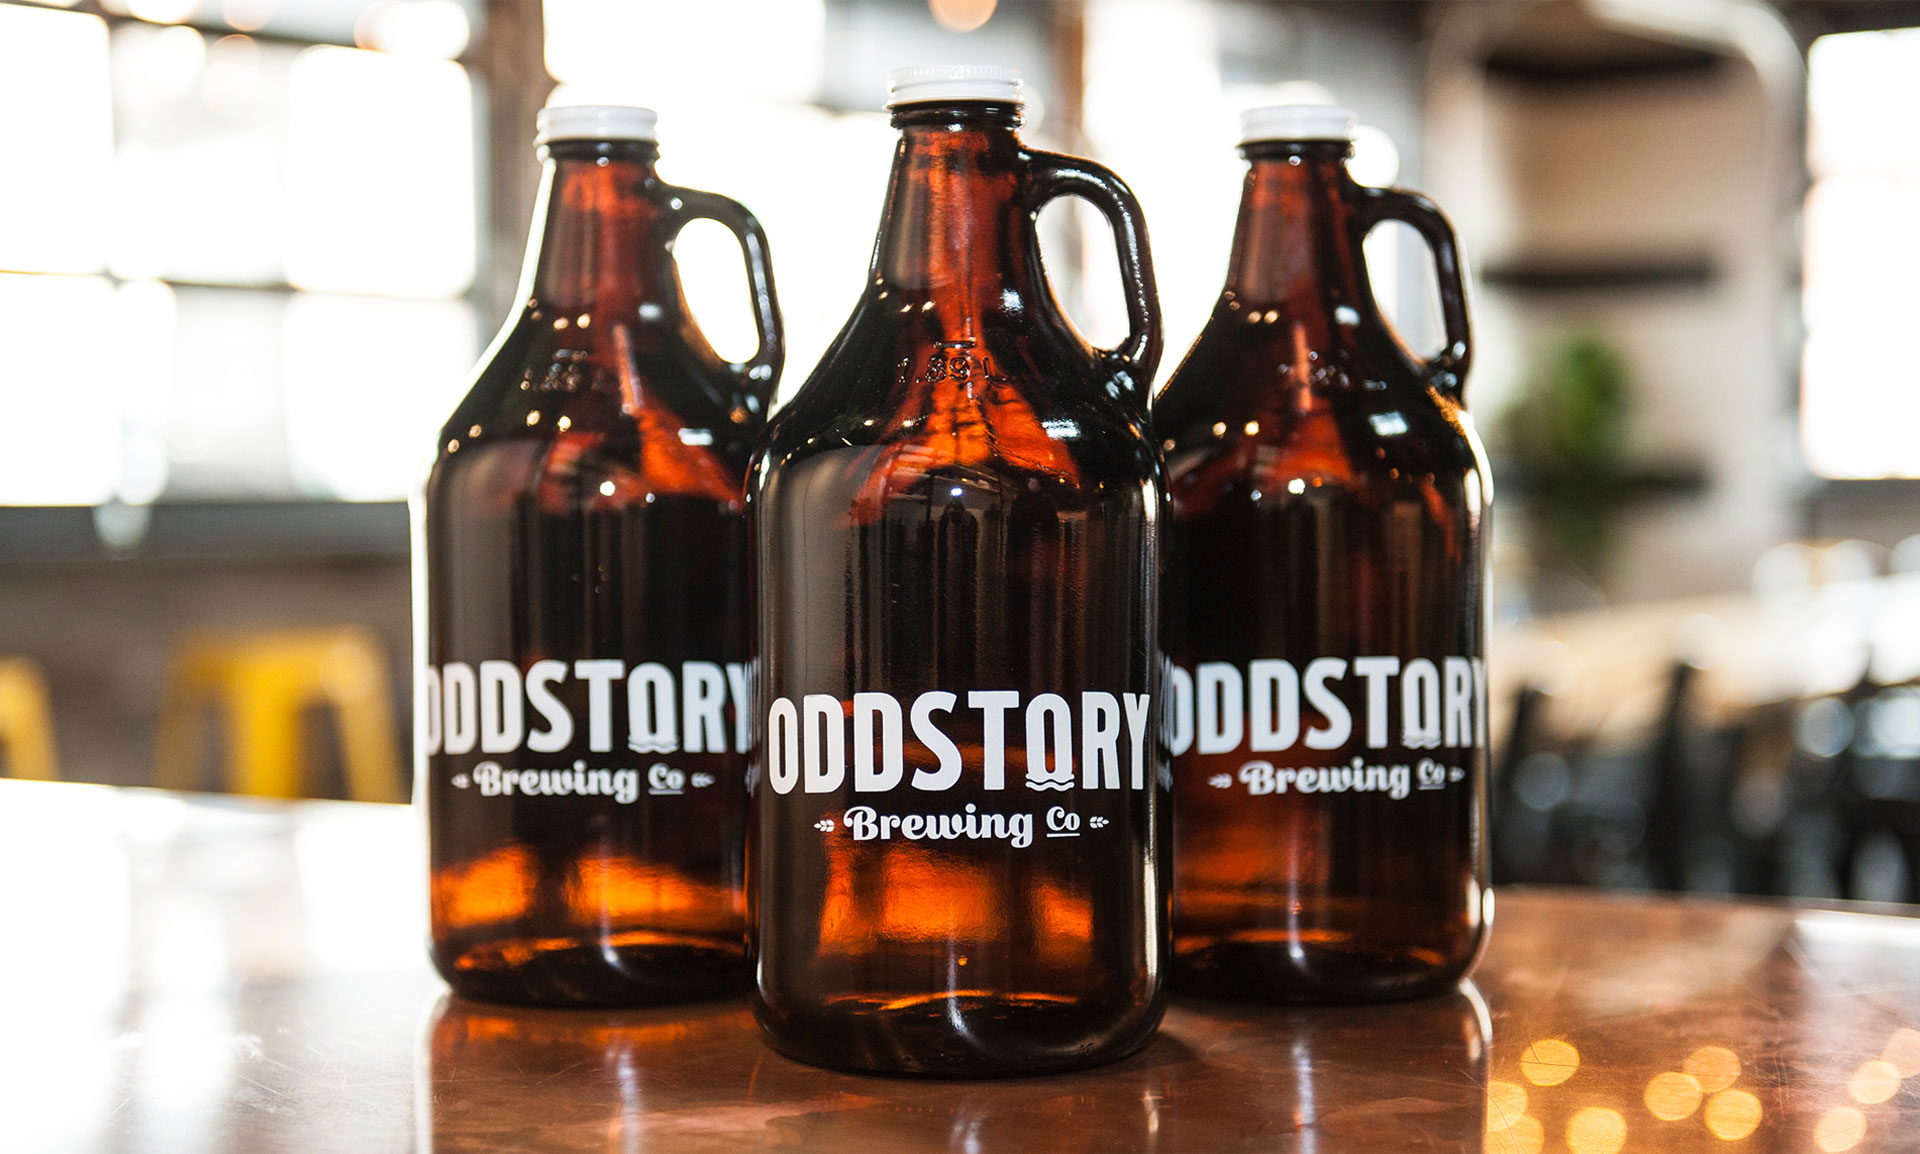 OddStory Brewing Co. - Identity, Growlers, Logos, Branding